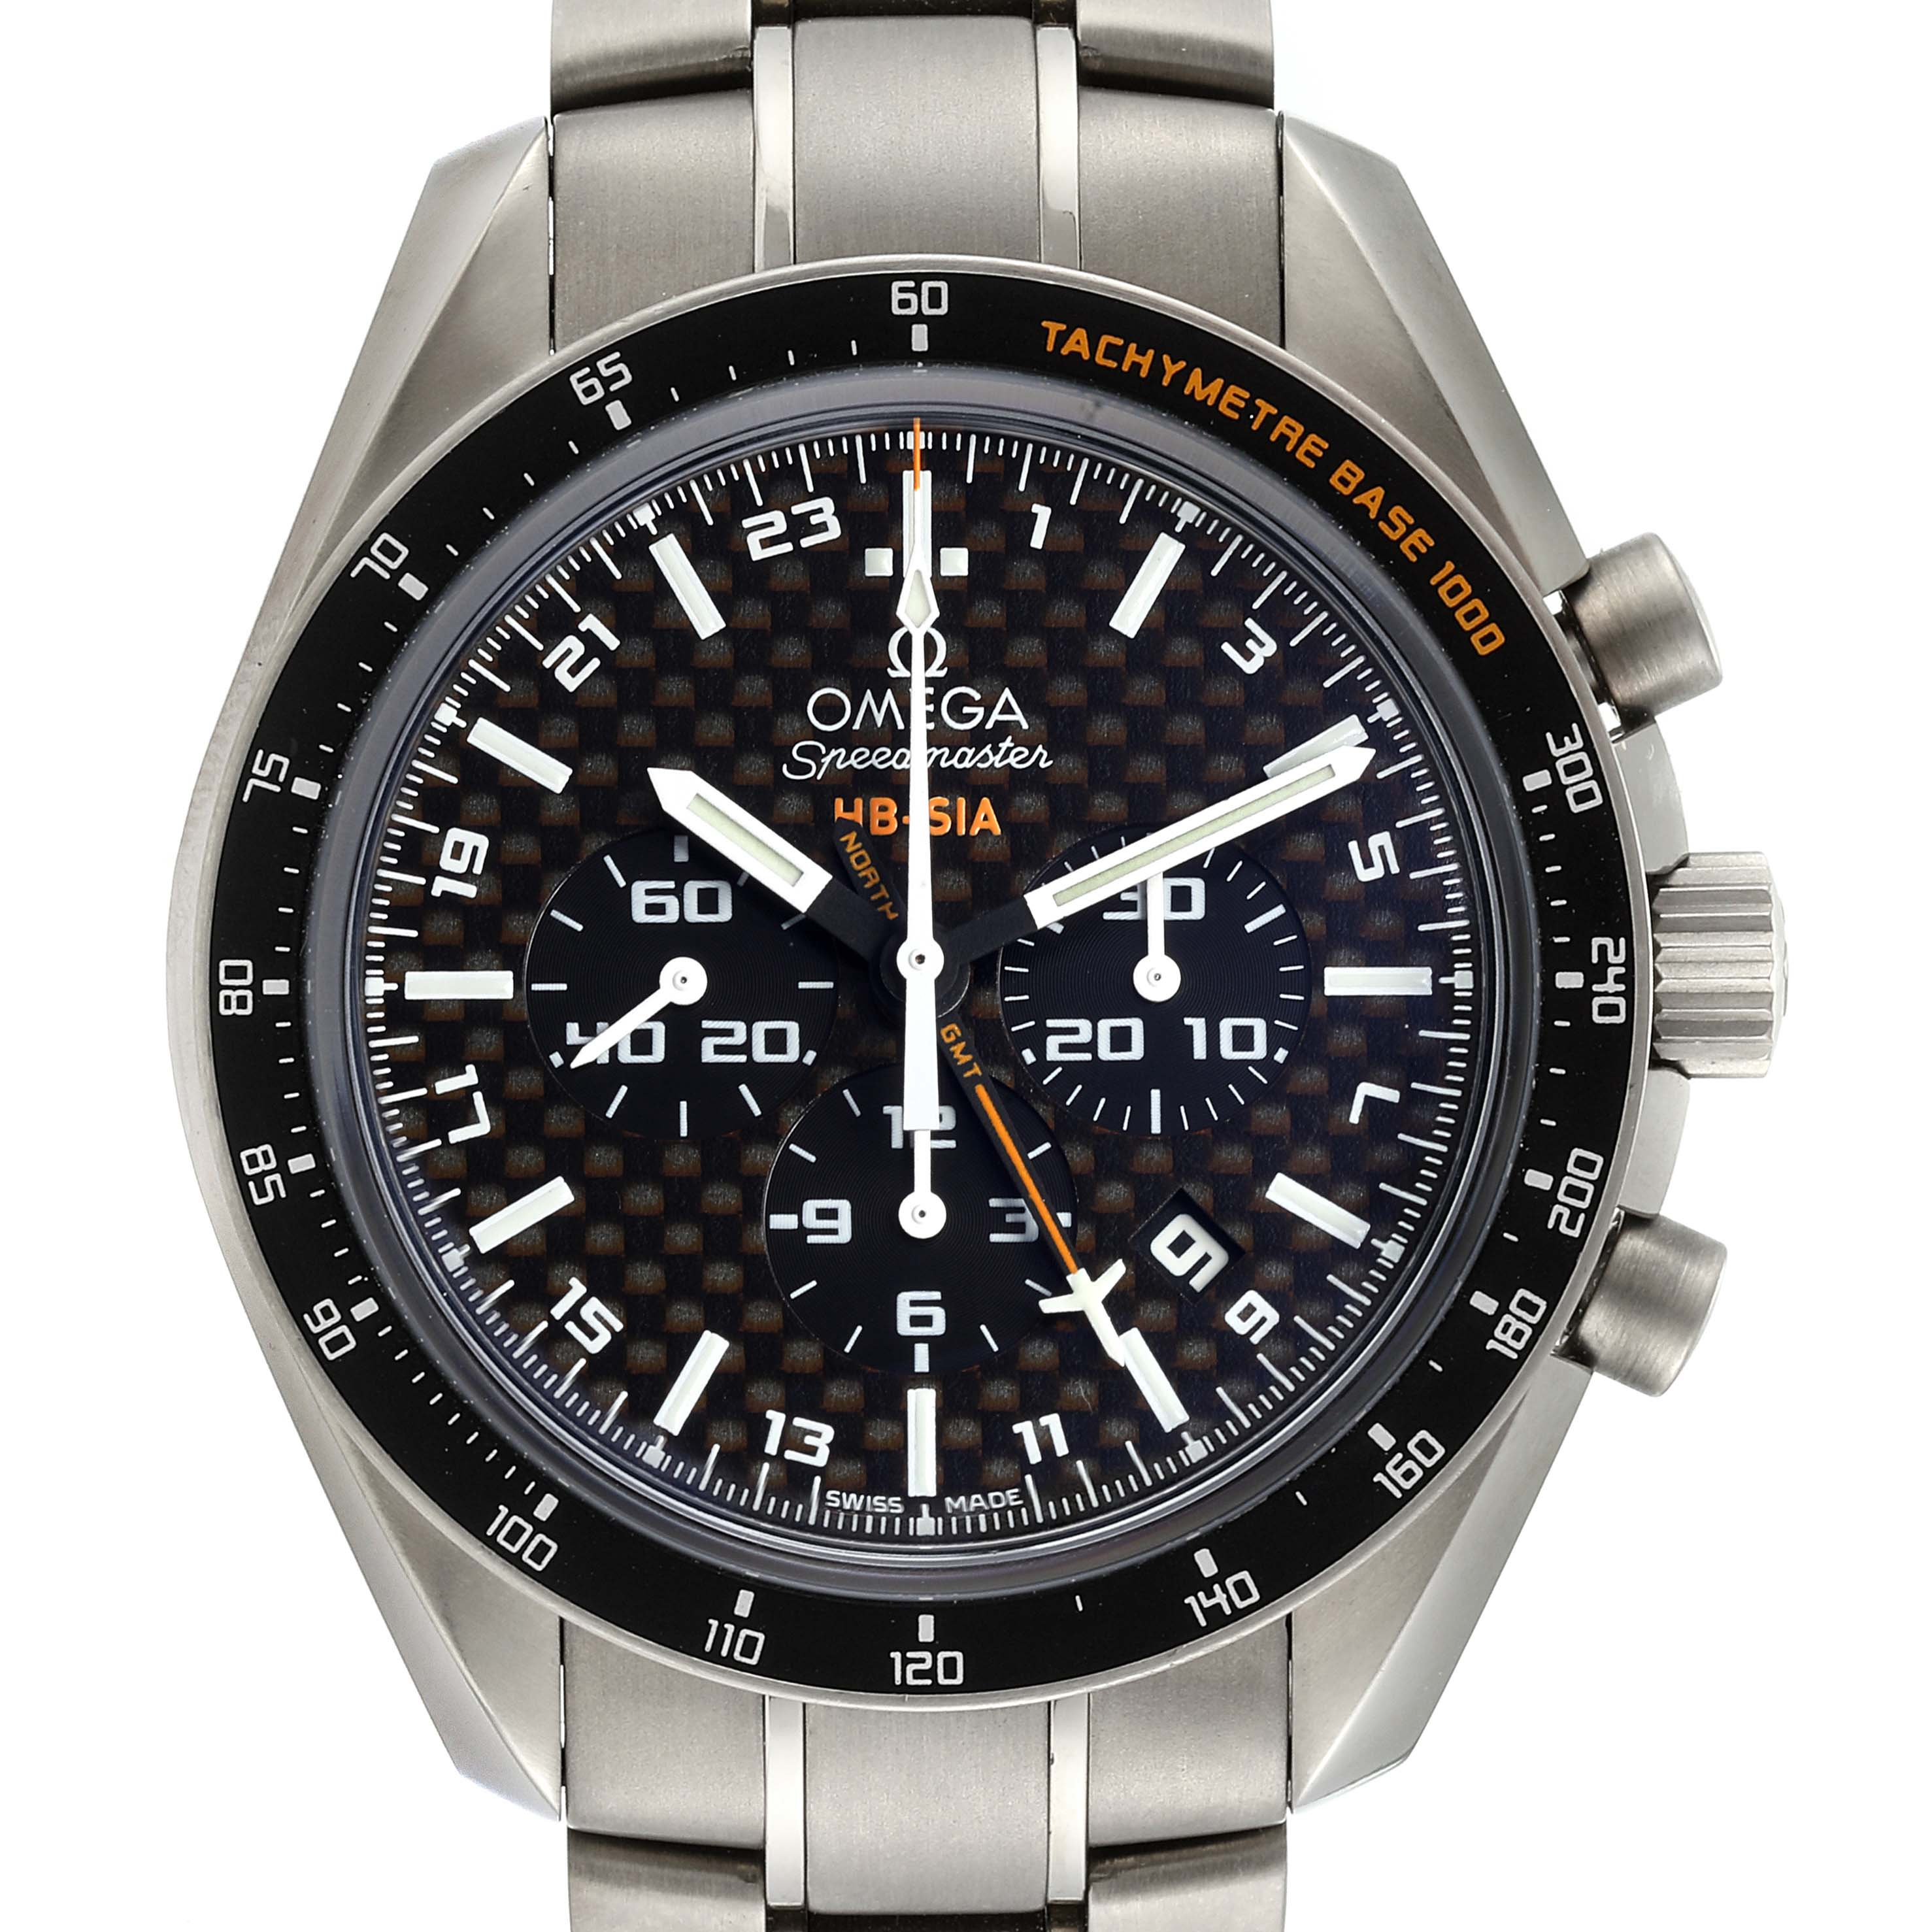 Omega Speedmaster HB-SIA GMT Titanium Watch 321.90.44.52.01.001 Box Card